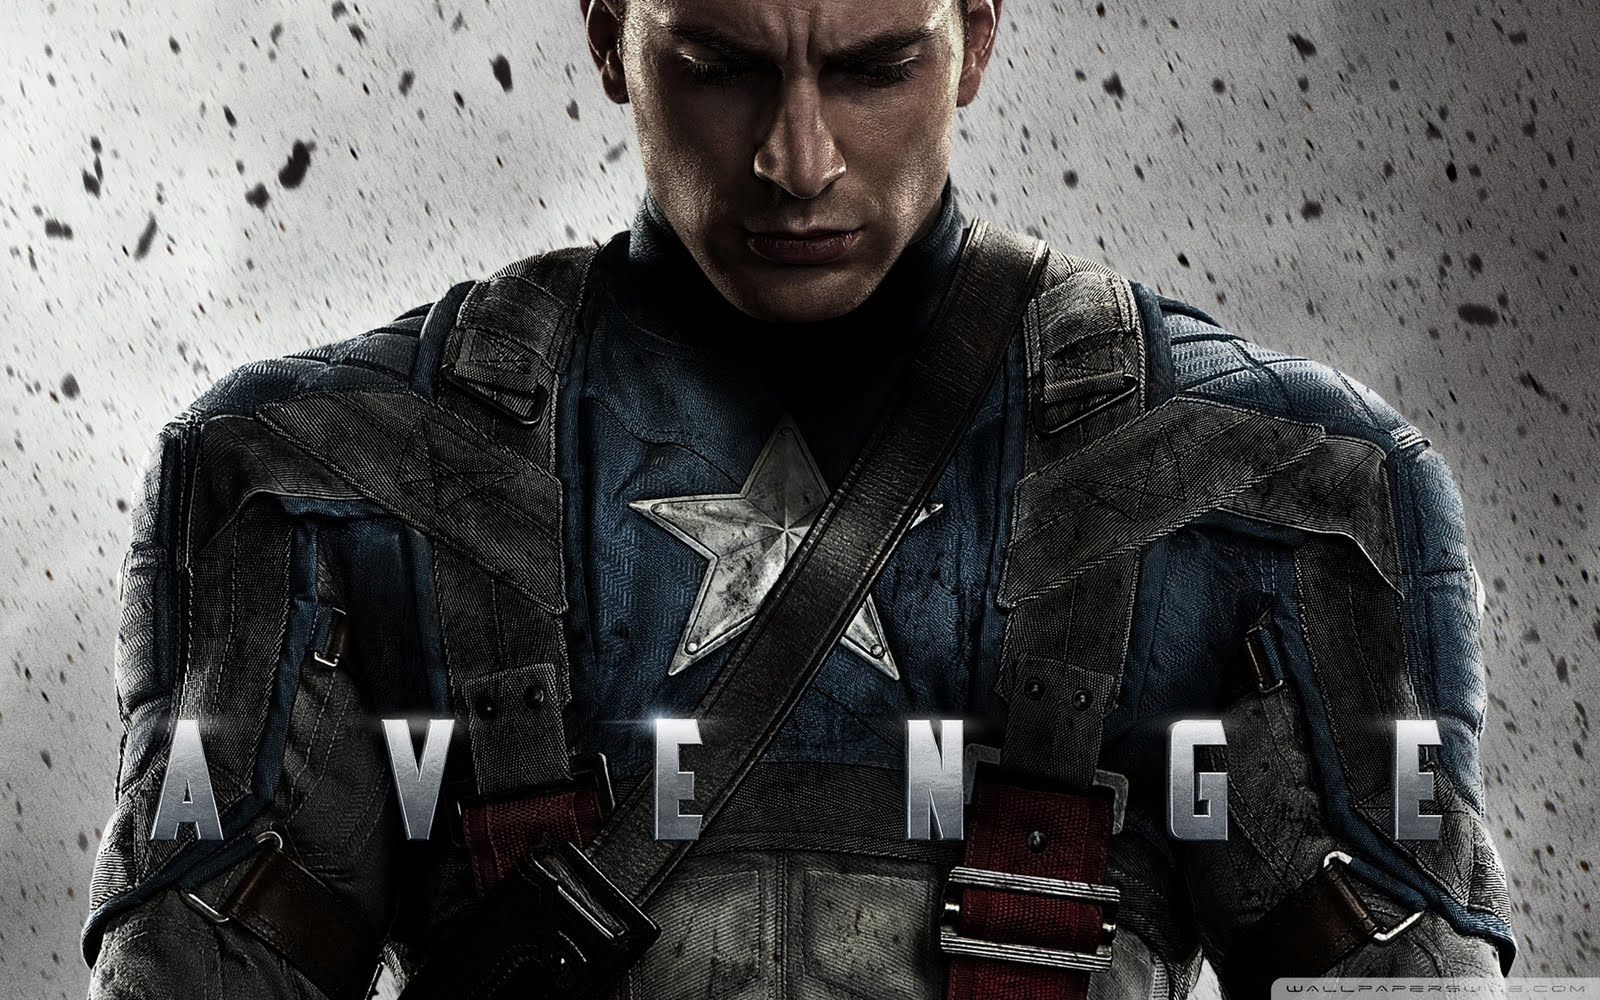 http://2.bp.blogspot.com/-dvx4NV0eNdg/TqElKgs6mLI/AAAAAAAAAS8/B_MNI-XkiZE/s1600/captain_america_movie_2011-wallpaper.jpg